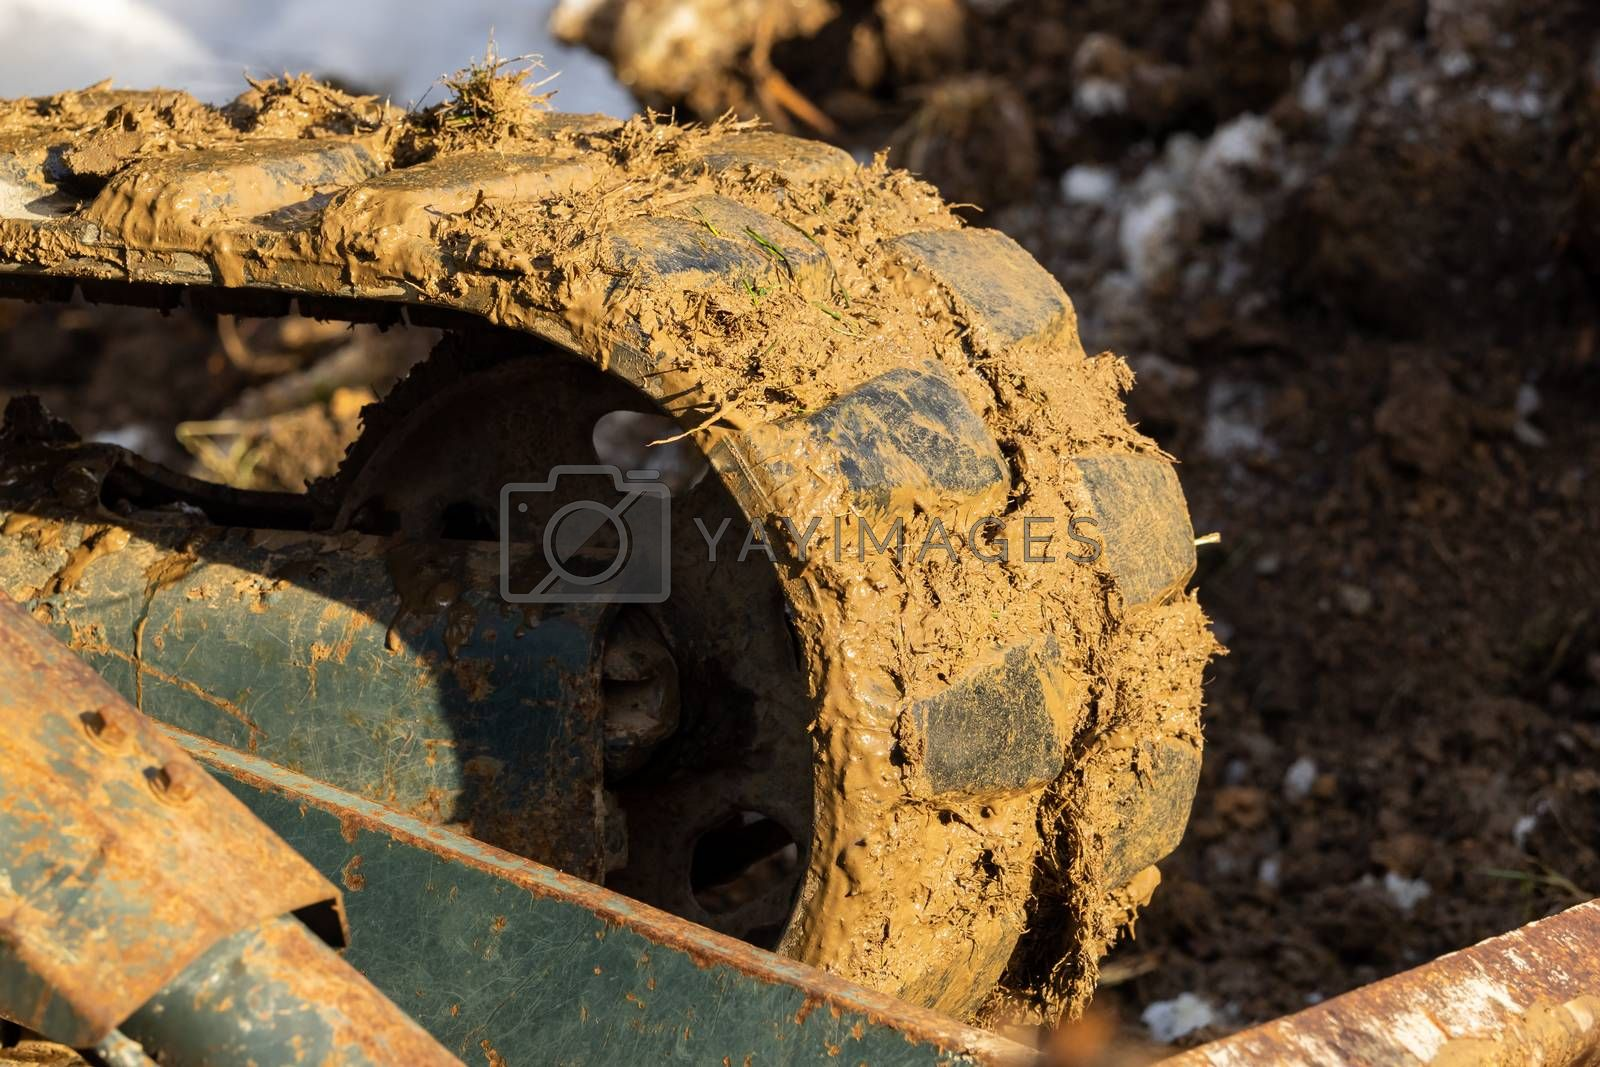 An excavator works in the garden, removing a root by Sandra Fotodesign